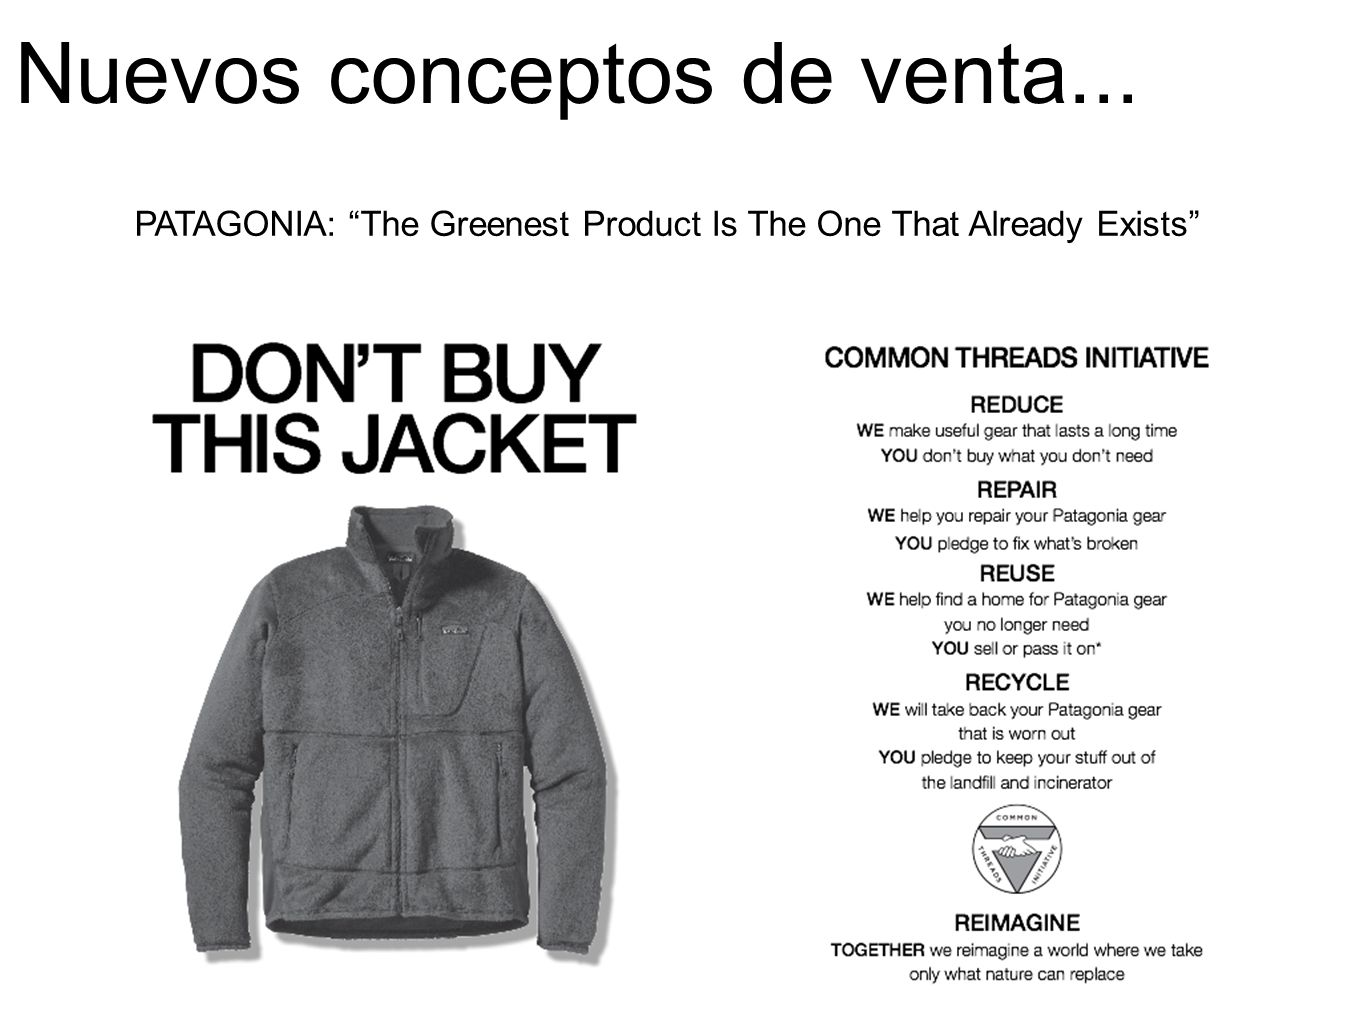 PATAGONIA: The Greenest Product Is The One That Already Exists